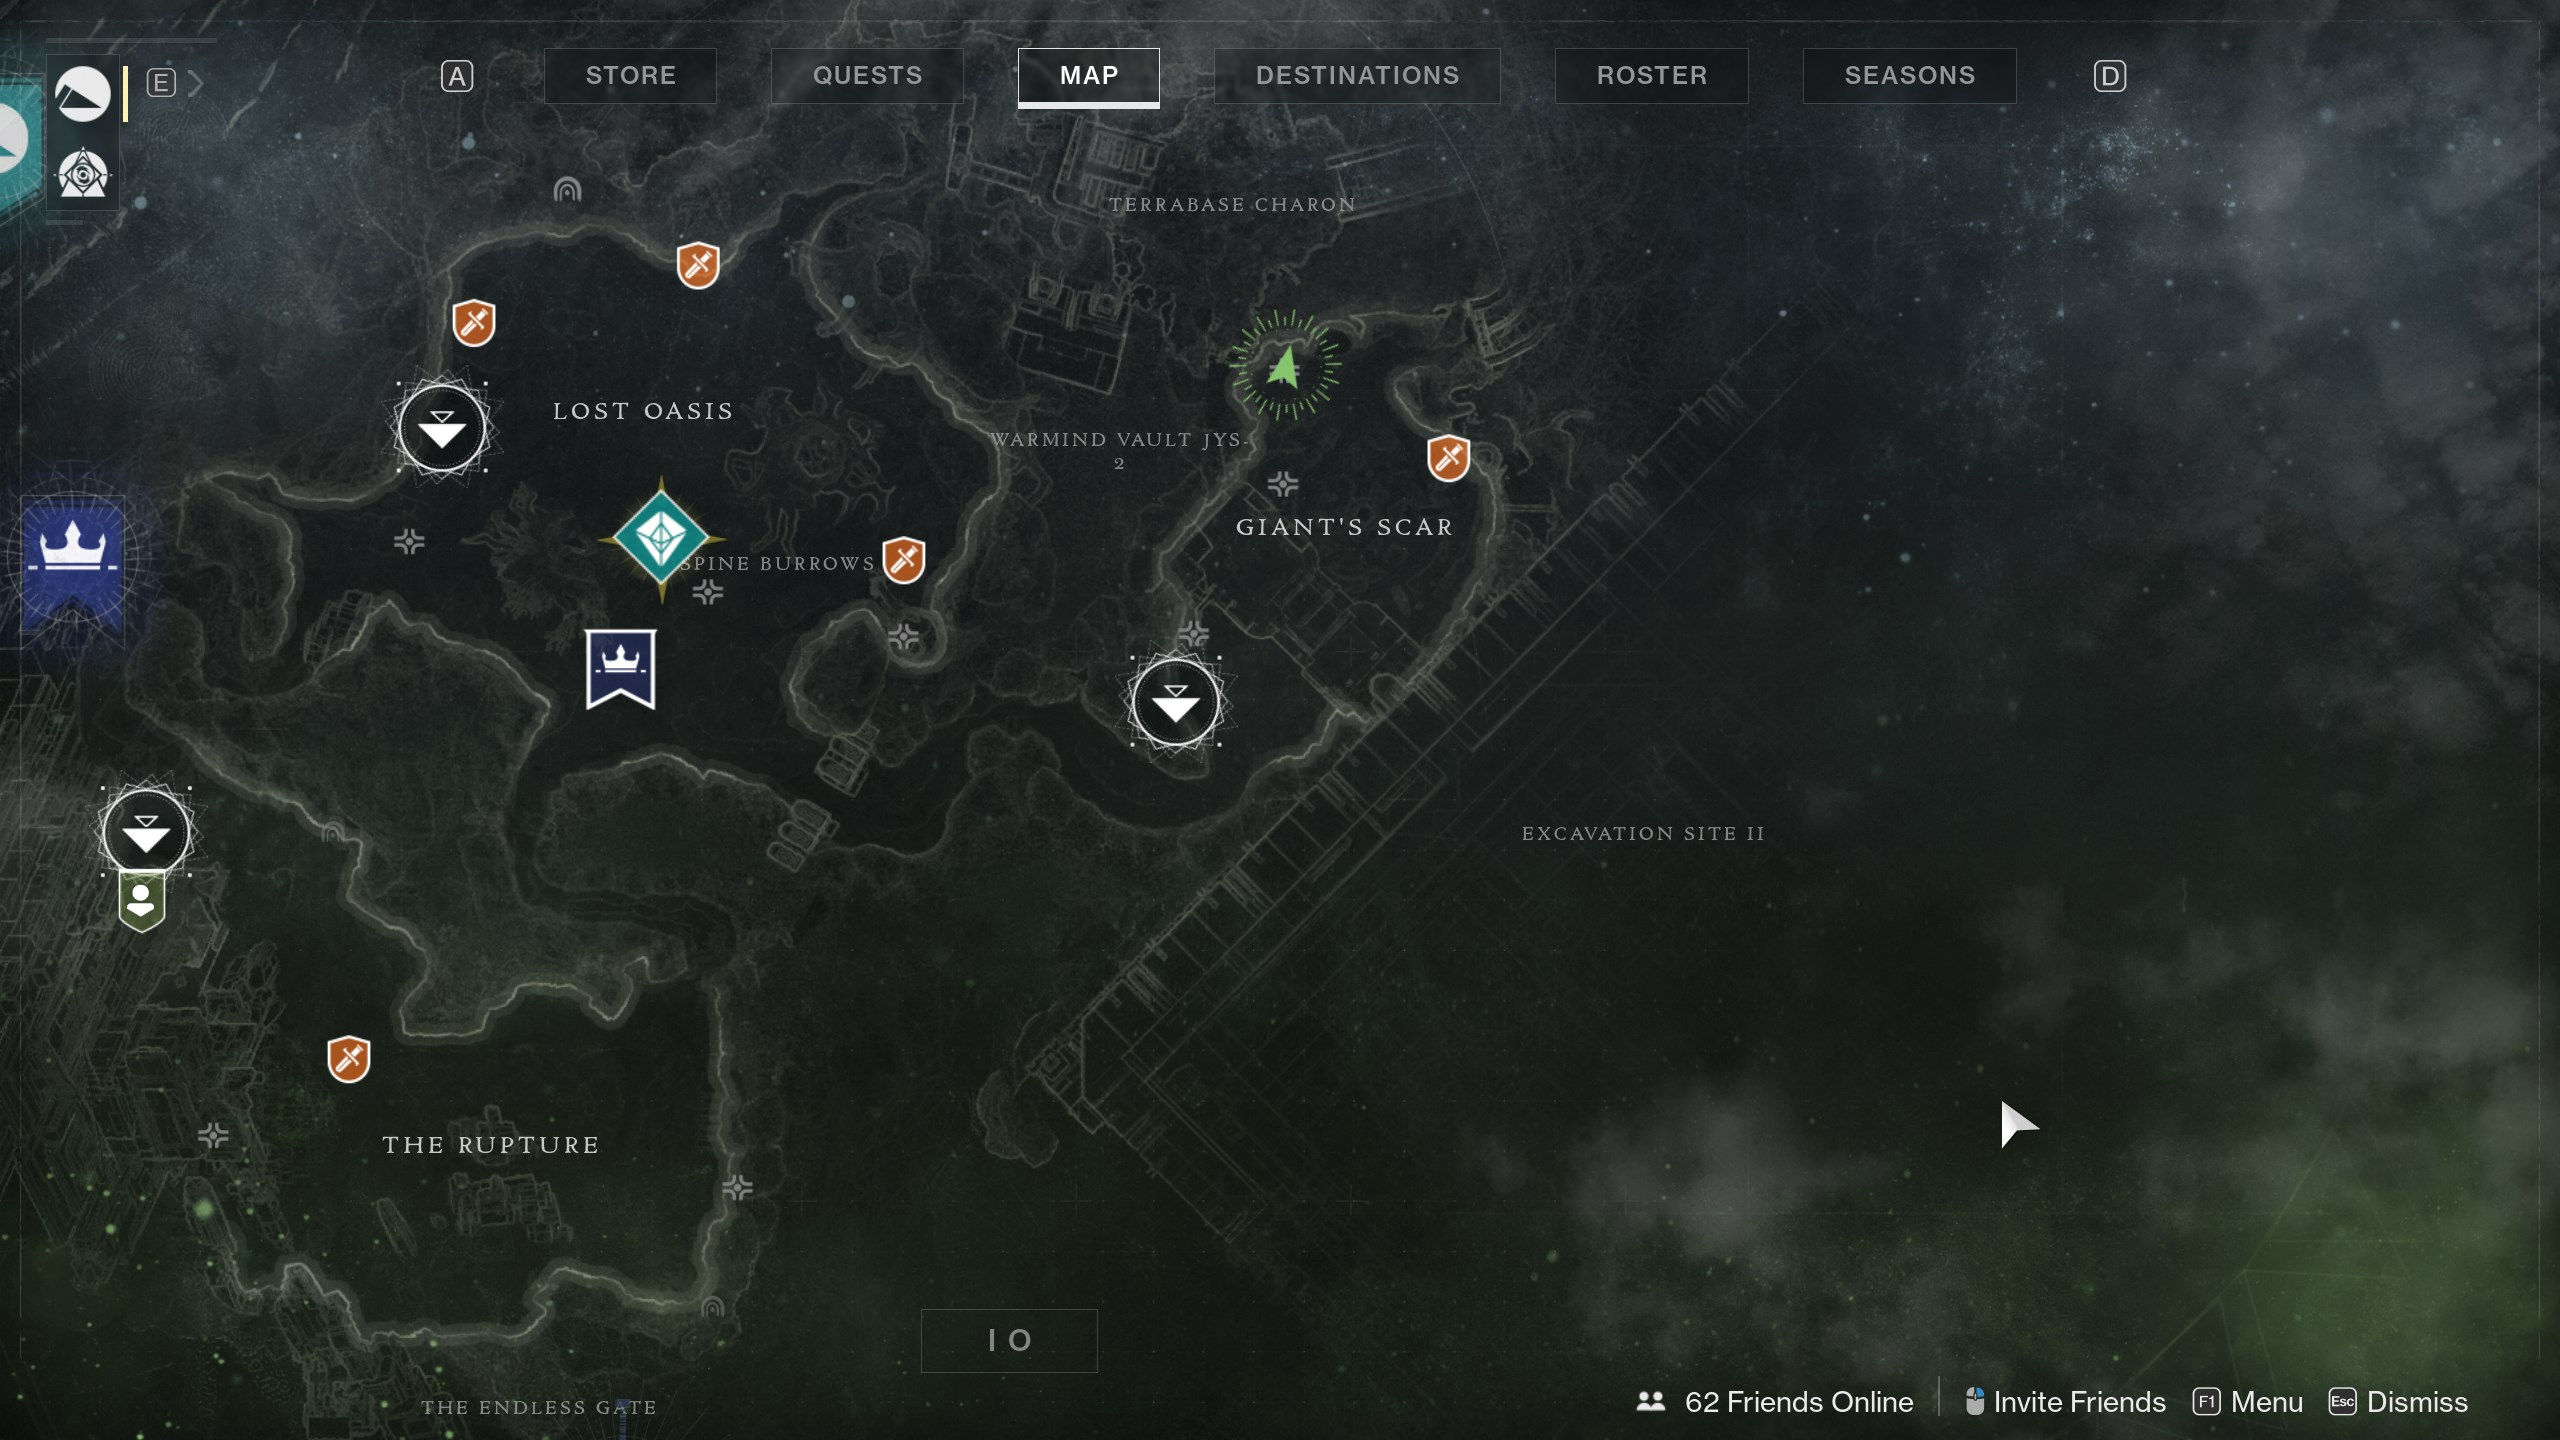 Xur's location and wares for October 16, 2020 - Destiny 2